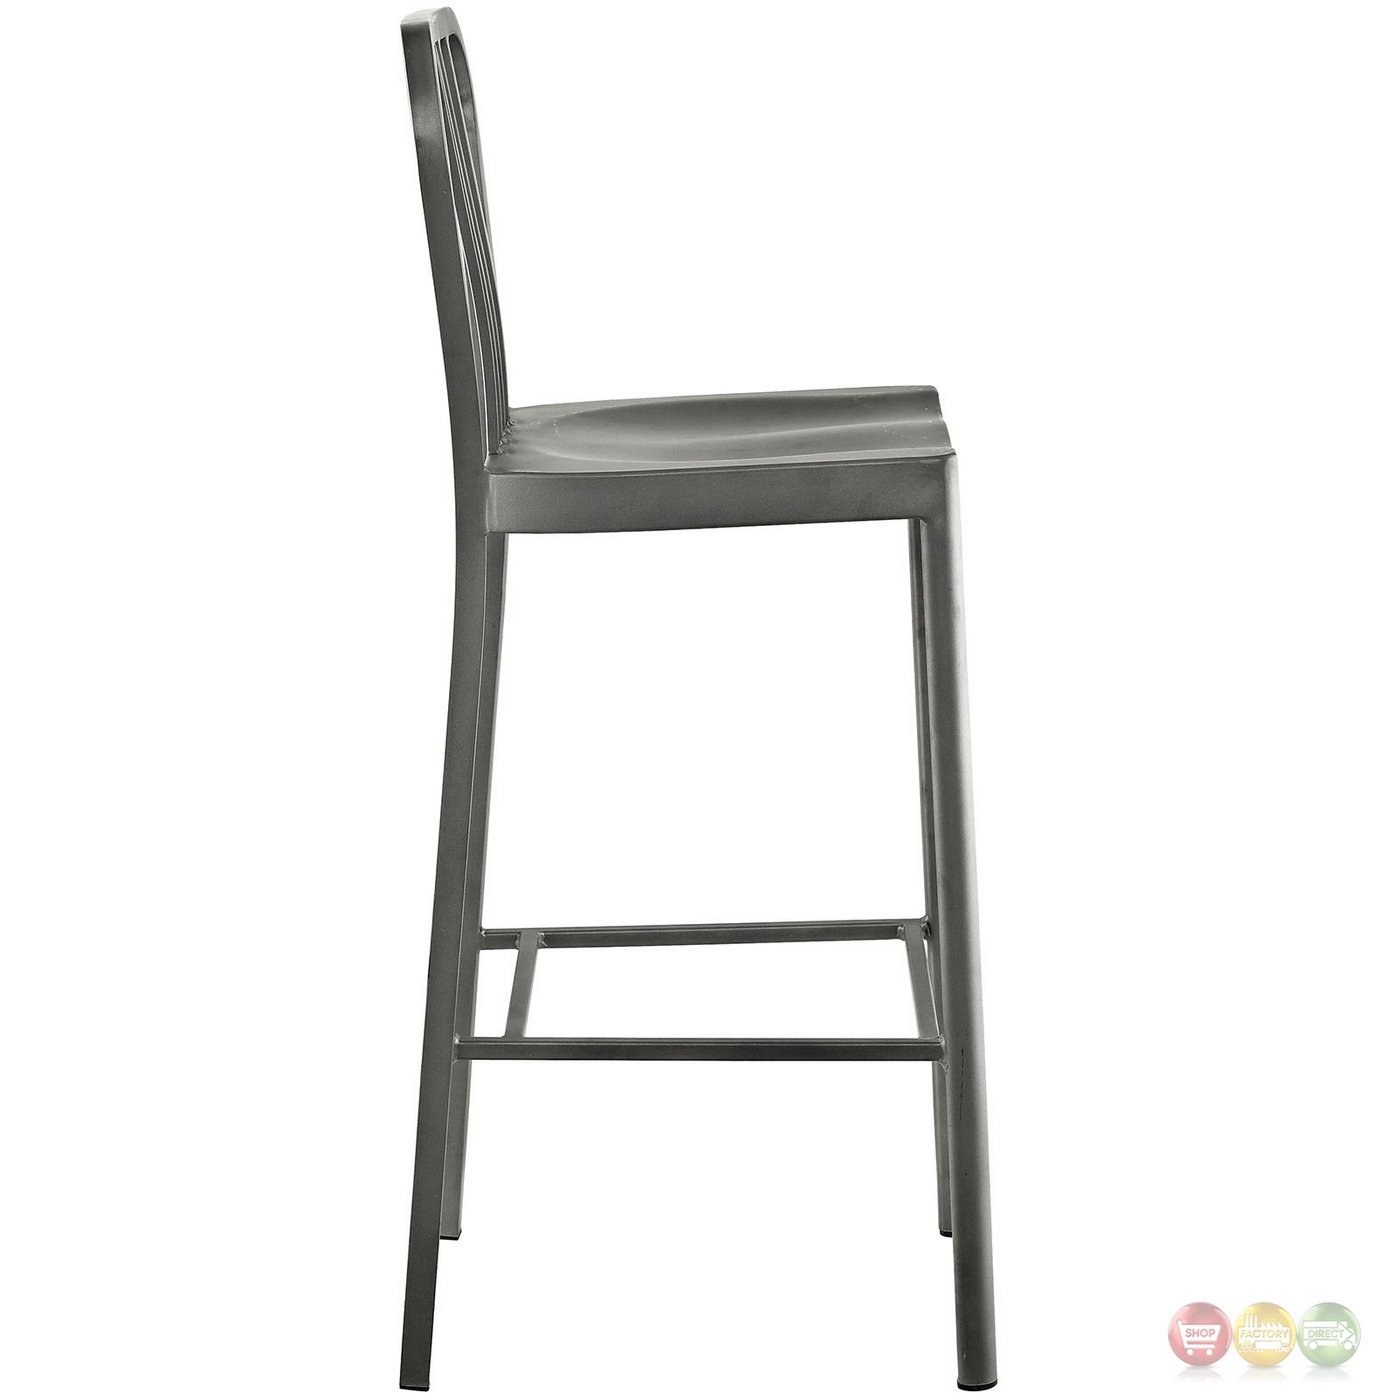 Clink Industrial Bar Stool With Brushed Steel Finish Silver